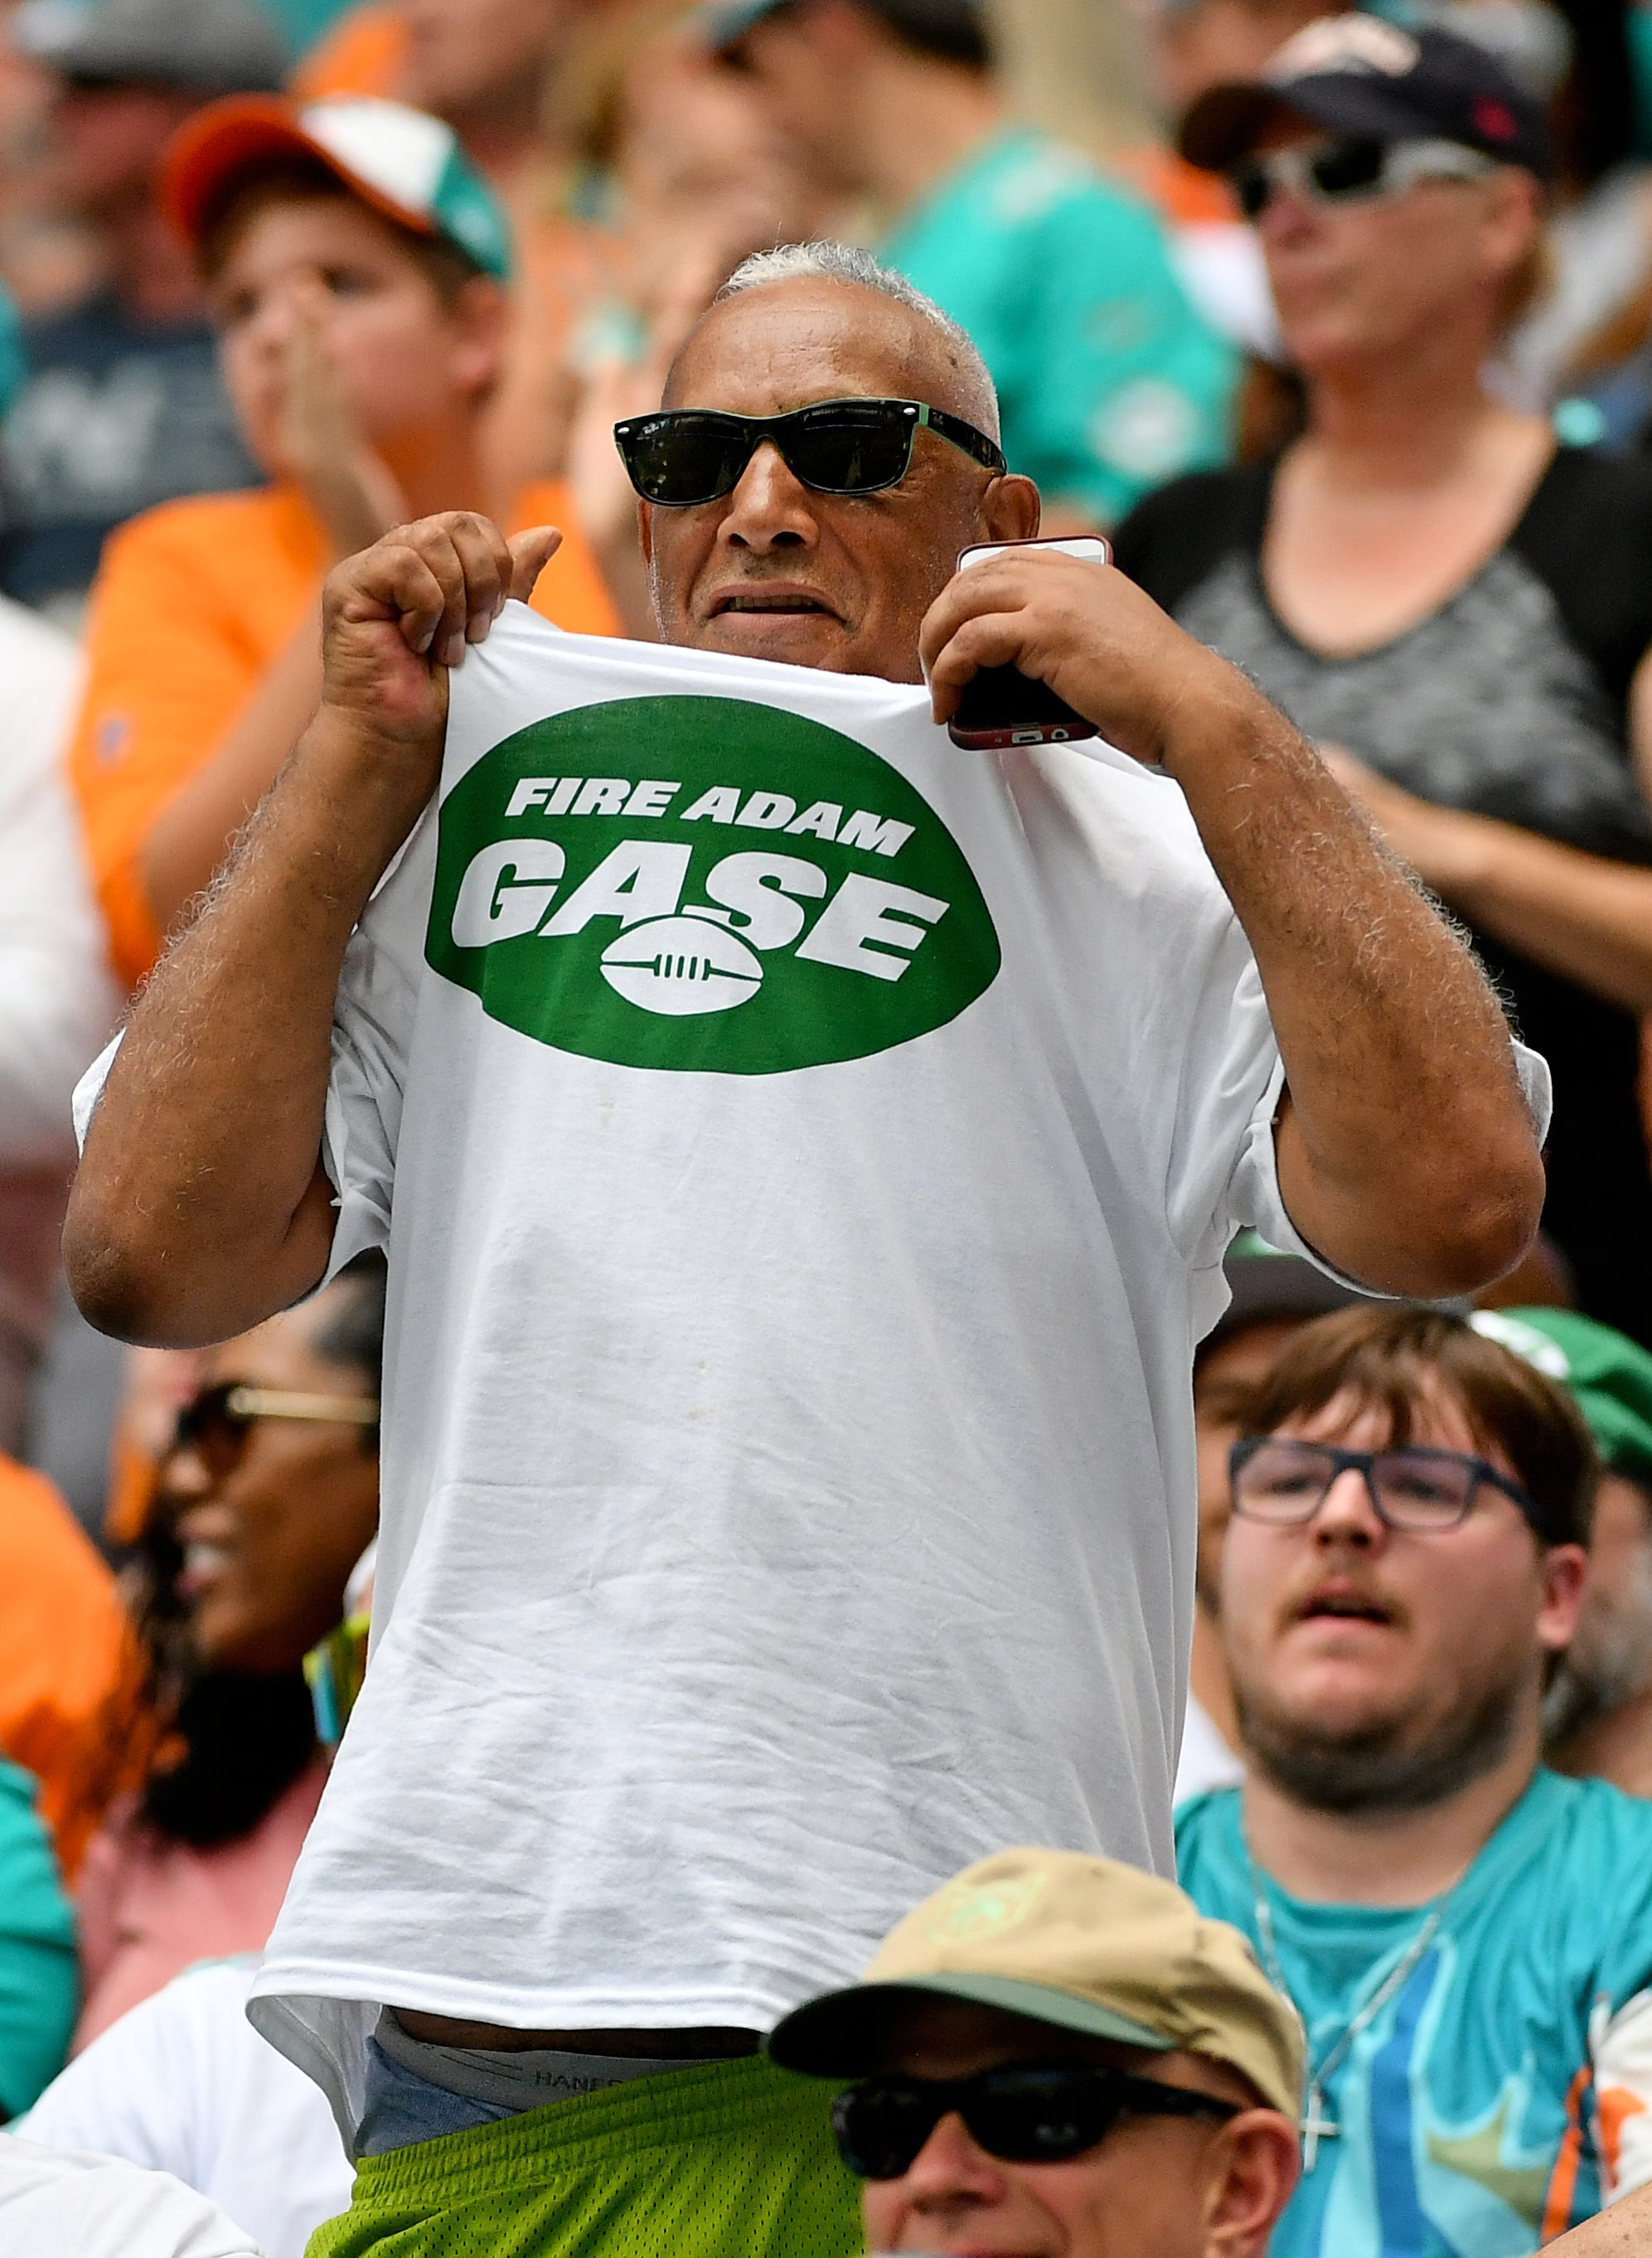 One-and-done for Adam Gase? New York Jets fans have had enough